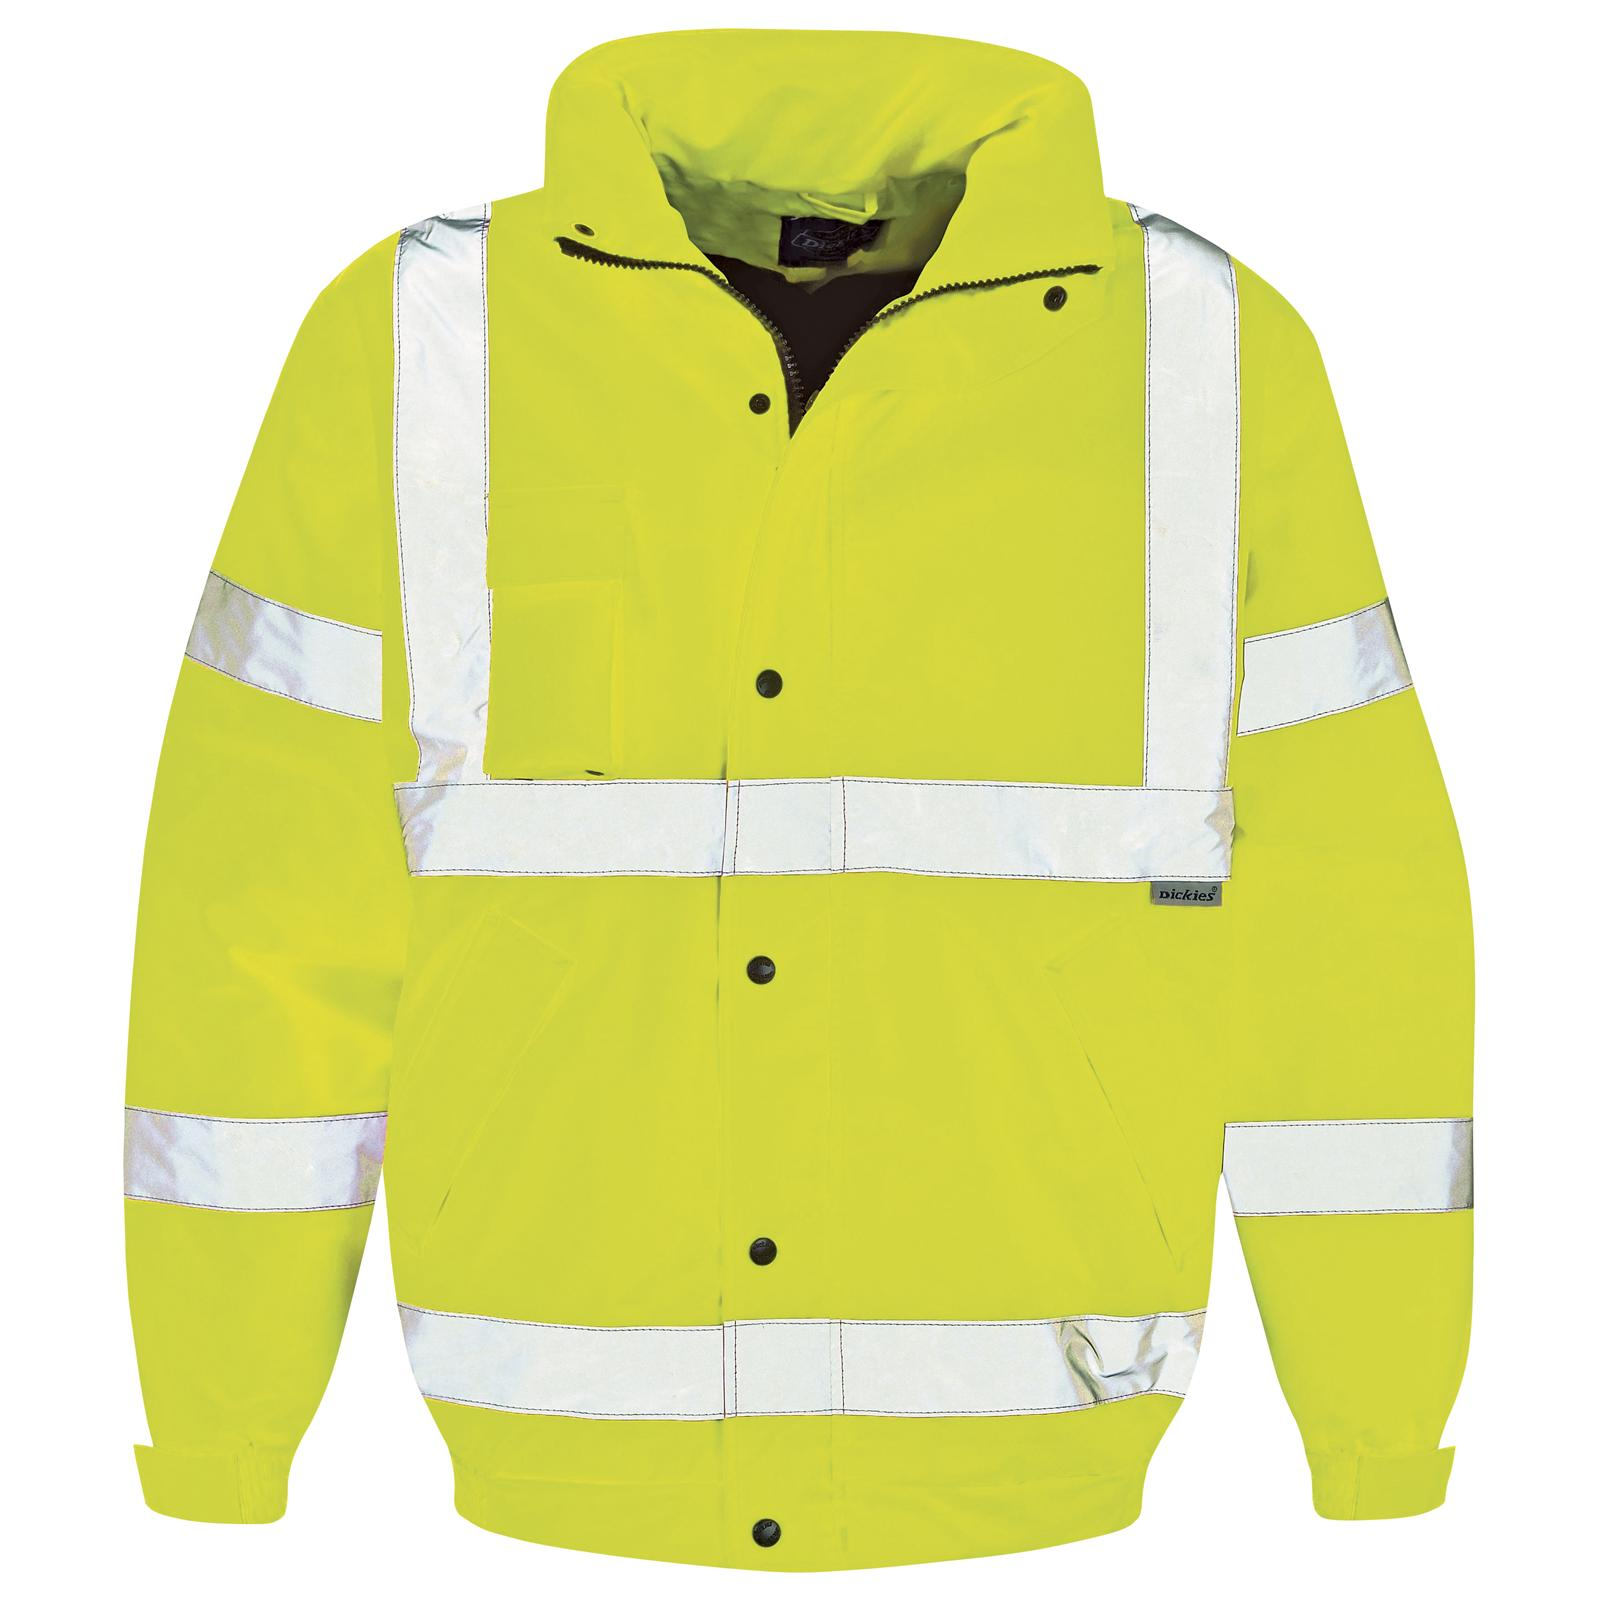 New DICKIES Hi Viz Safety Work Bomber Jacket in Fluorescent Yellow ...